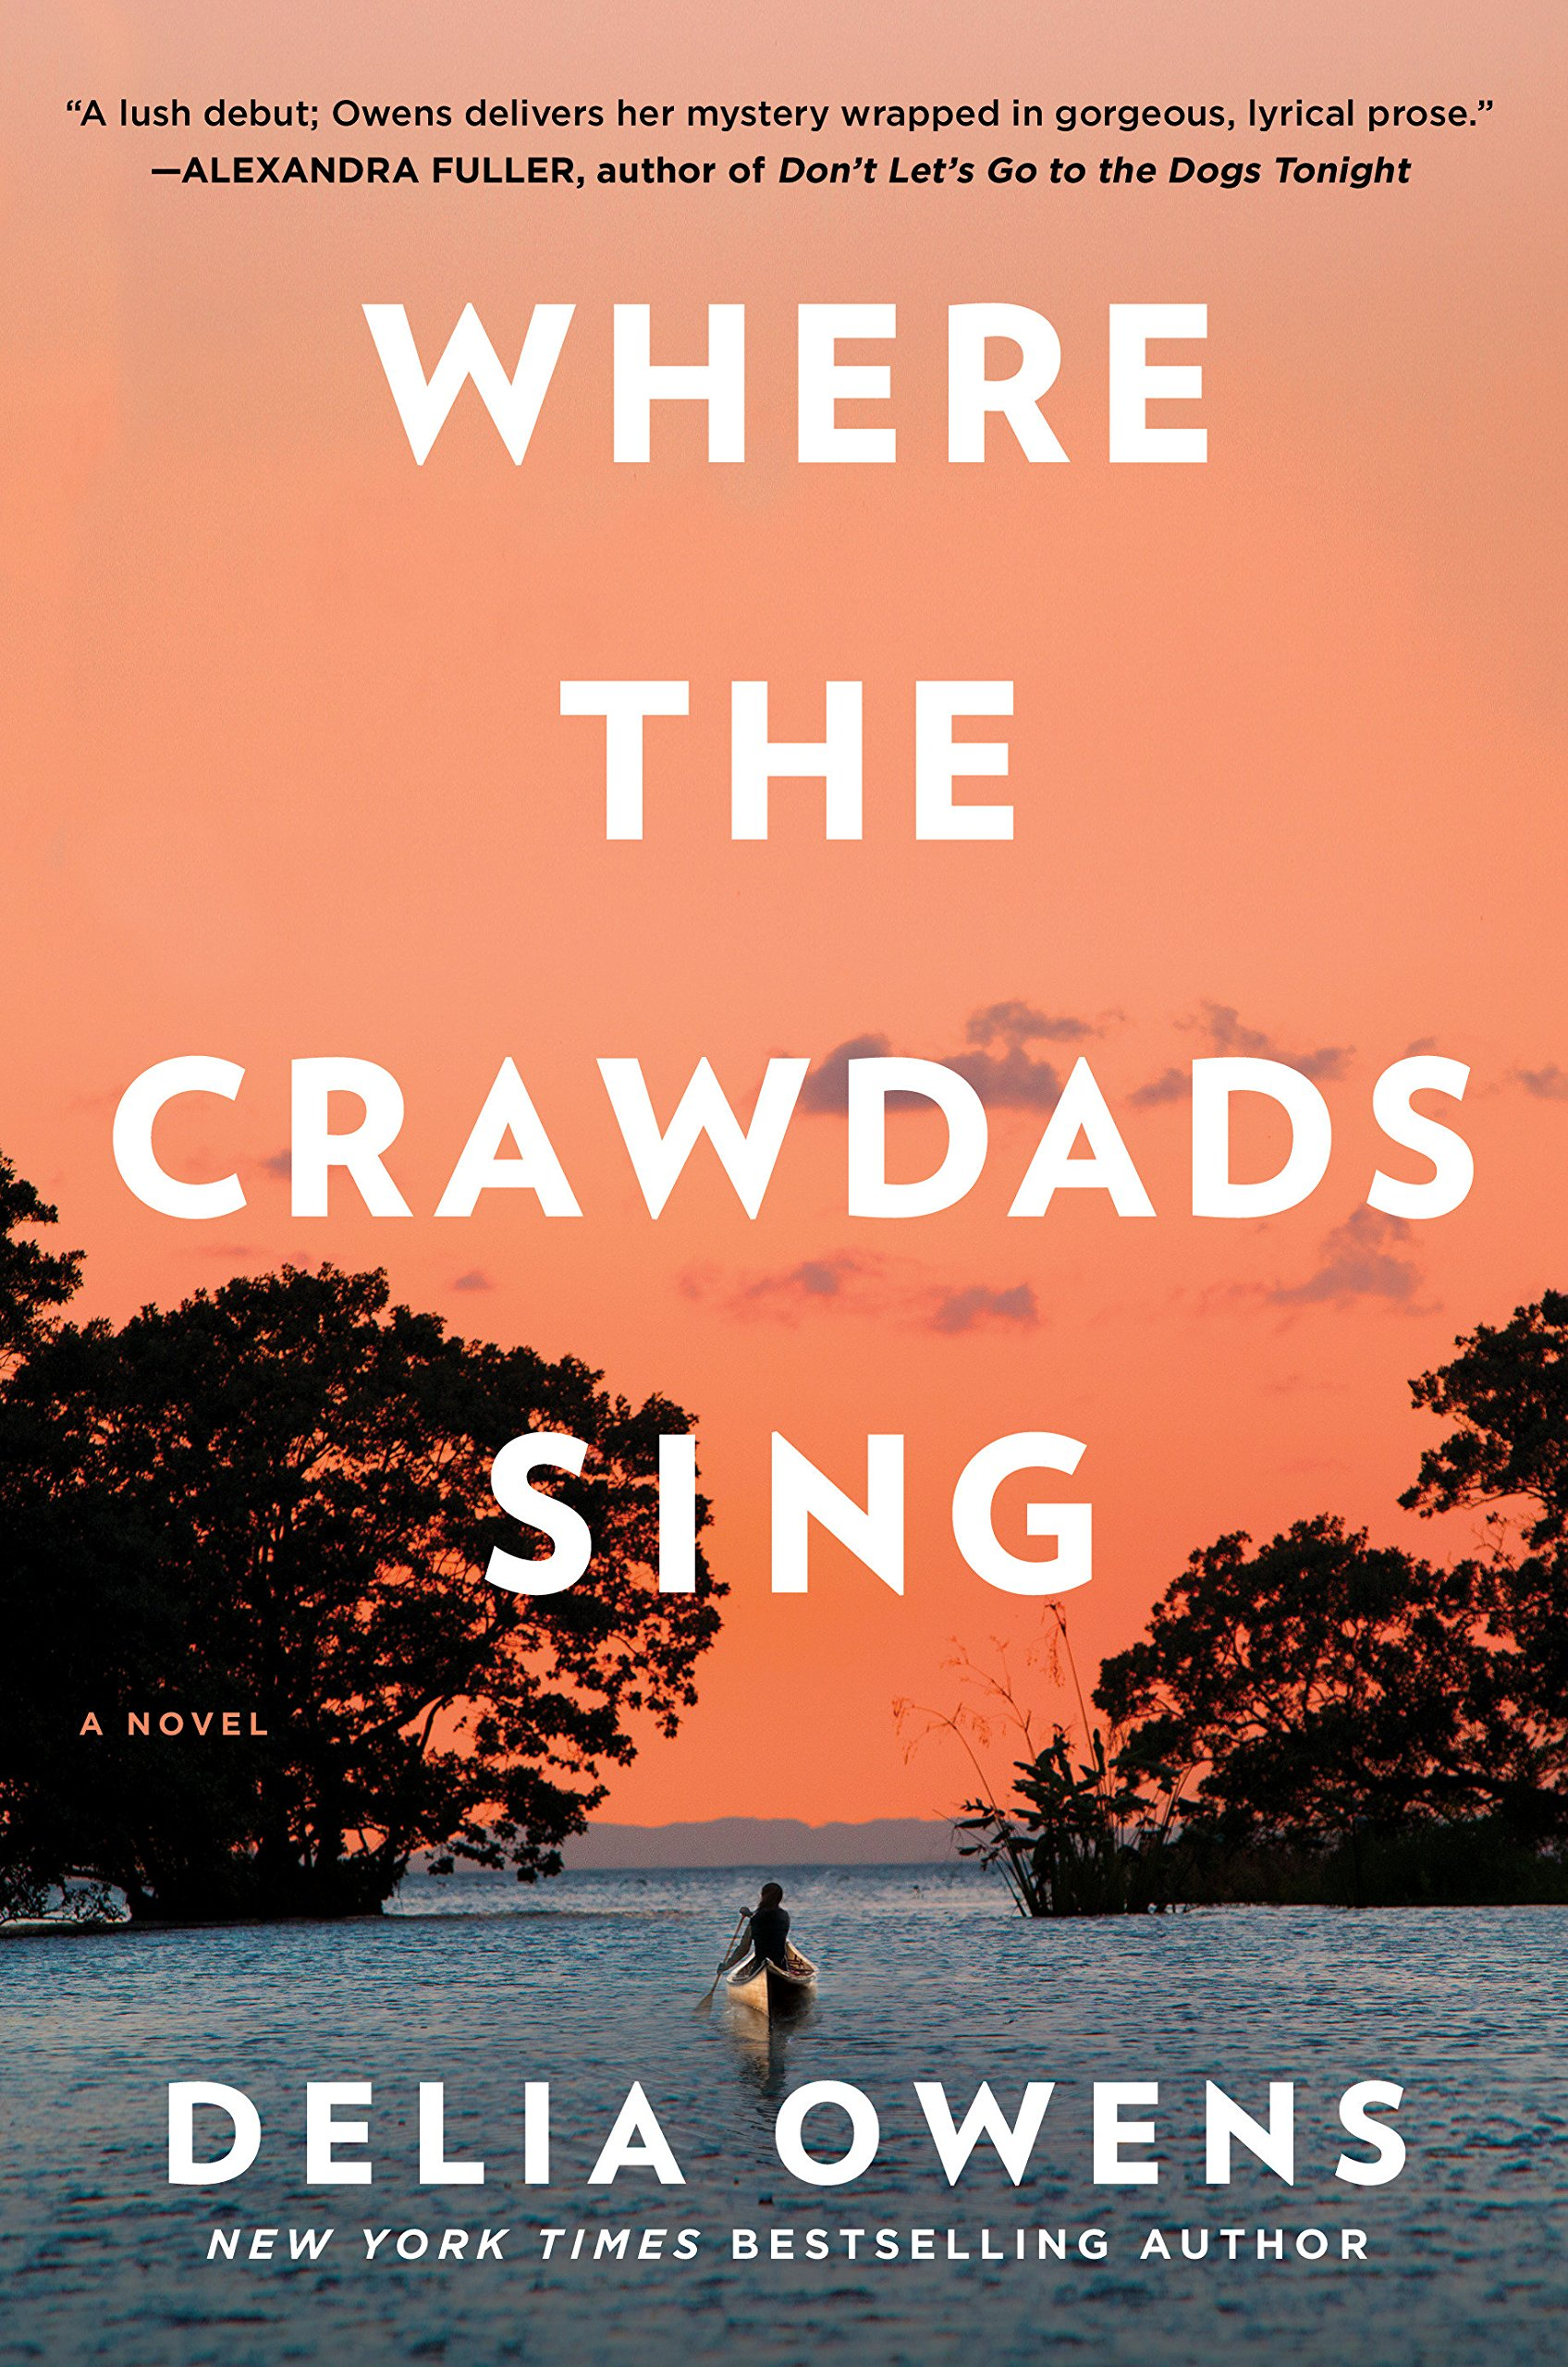 Where the Crawdads Sing by Delia Owens.jpg